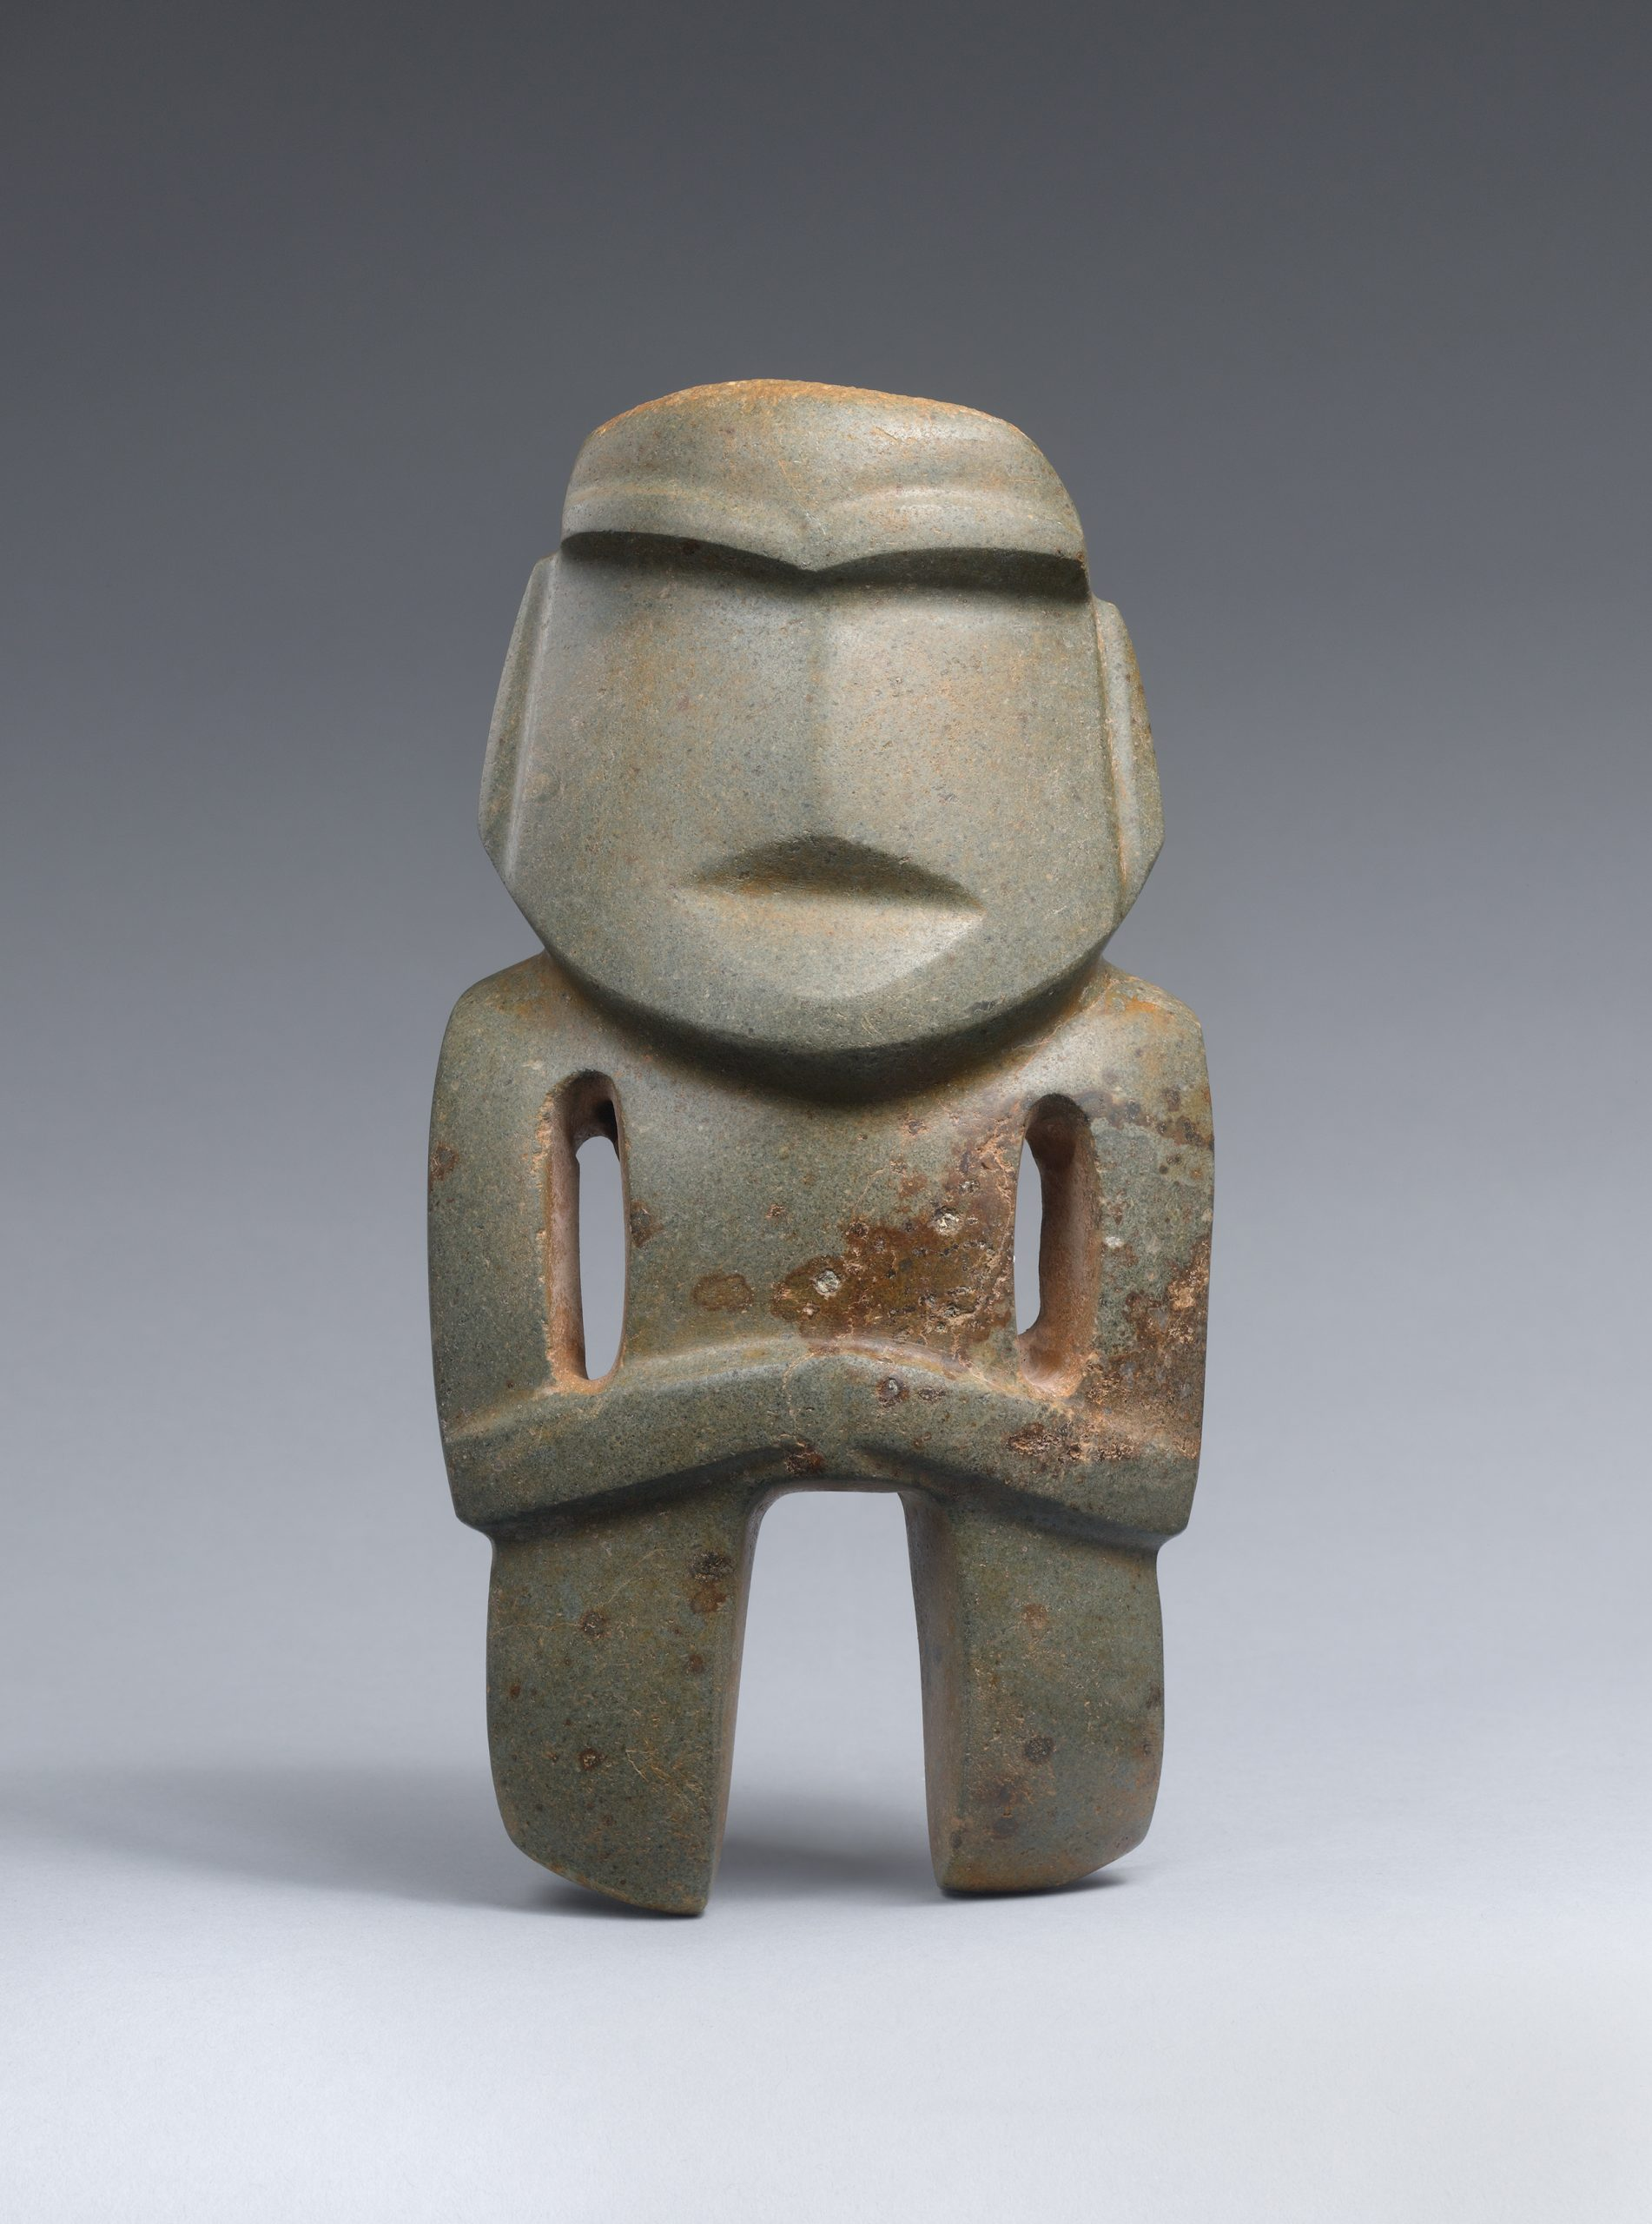 Larger ceramic figure sits cross-legged, one hand resting at its neck, the other on a small child in its lap.